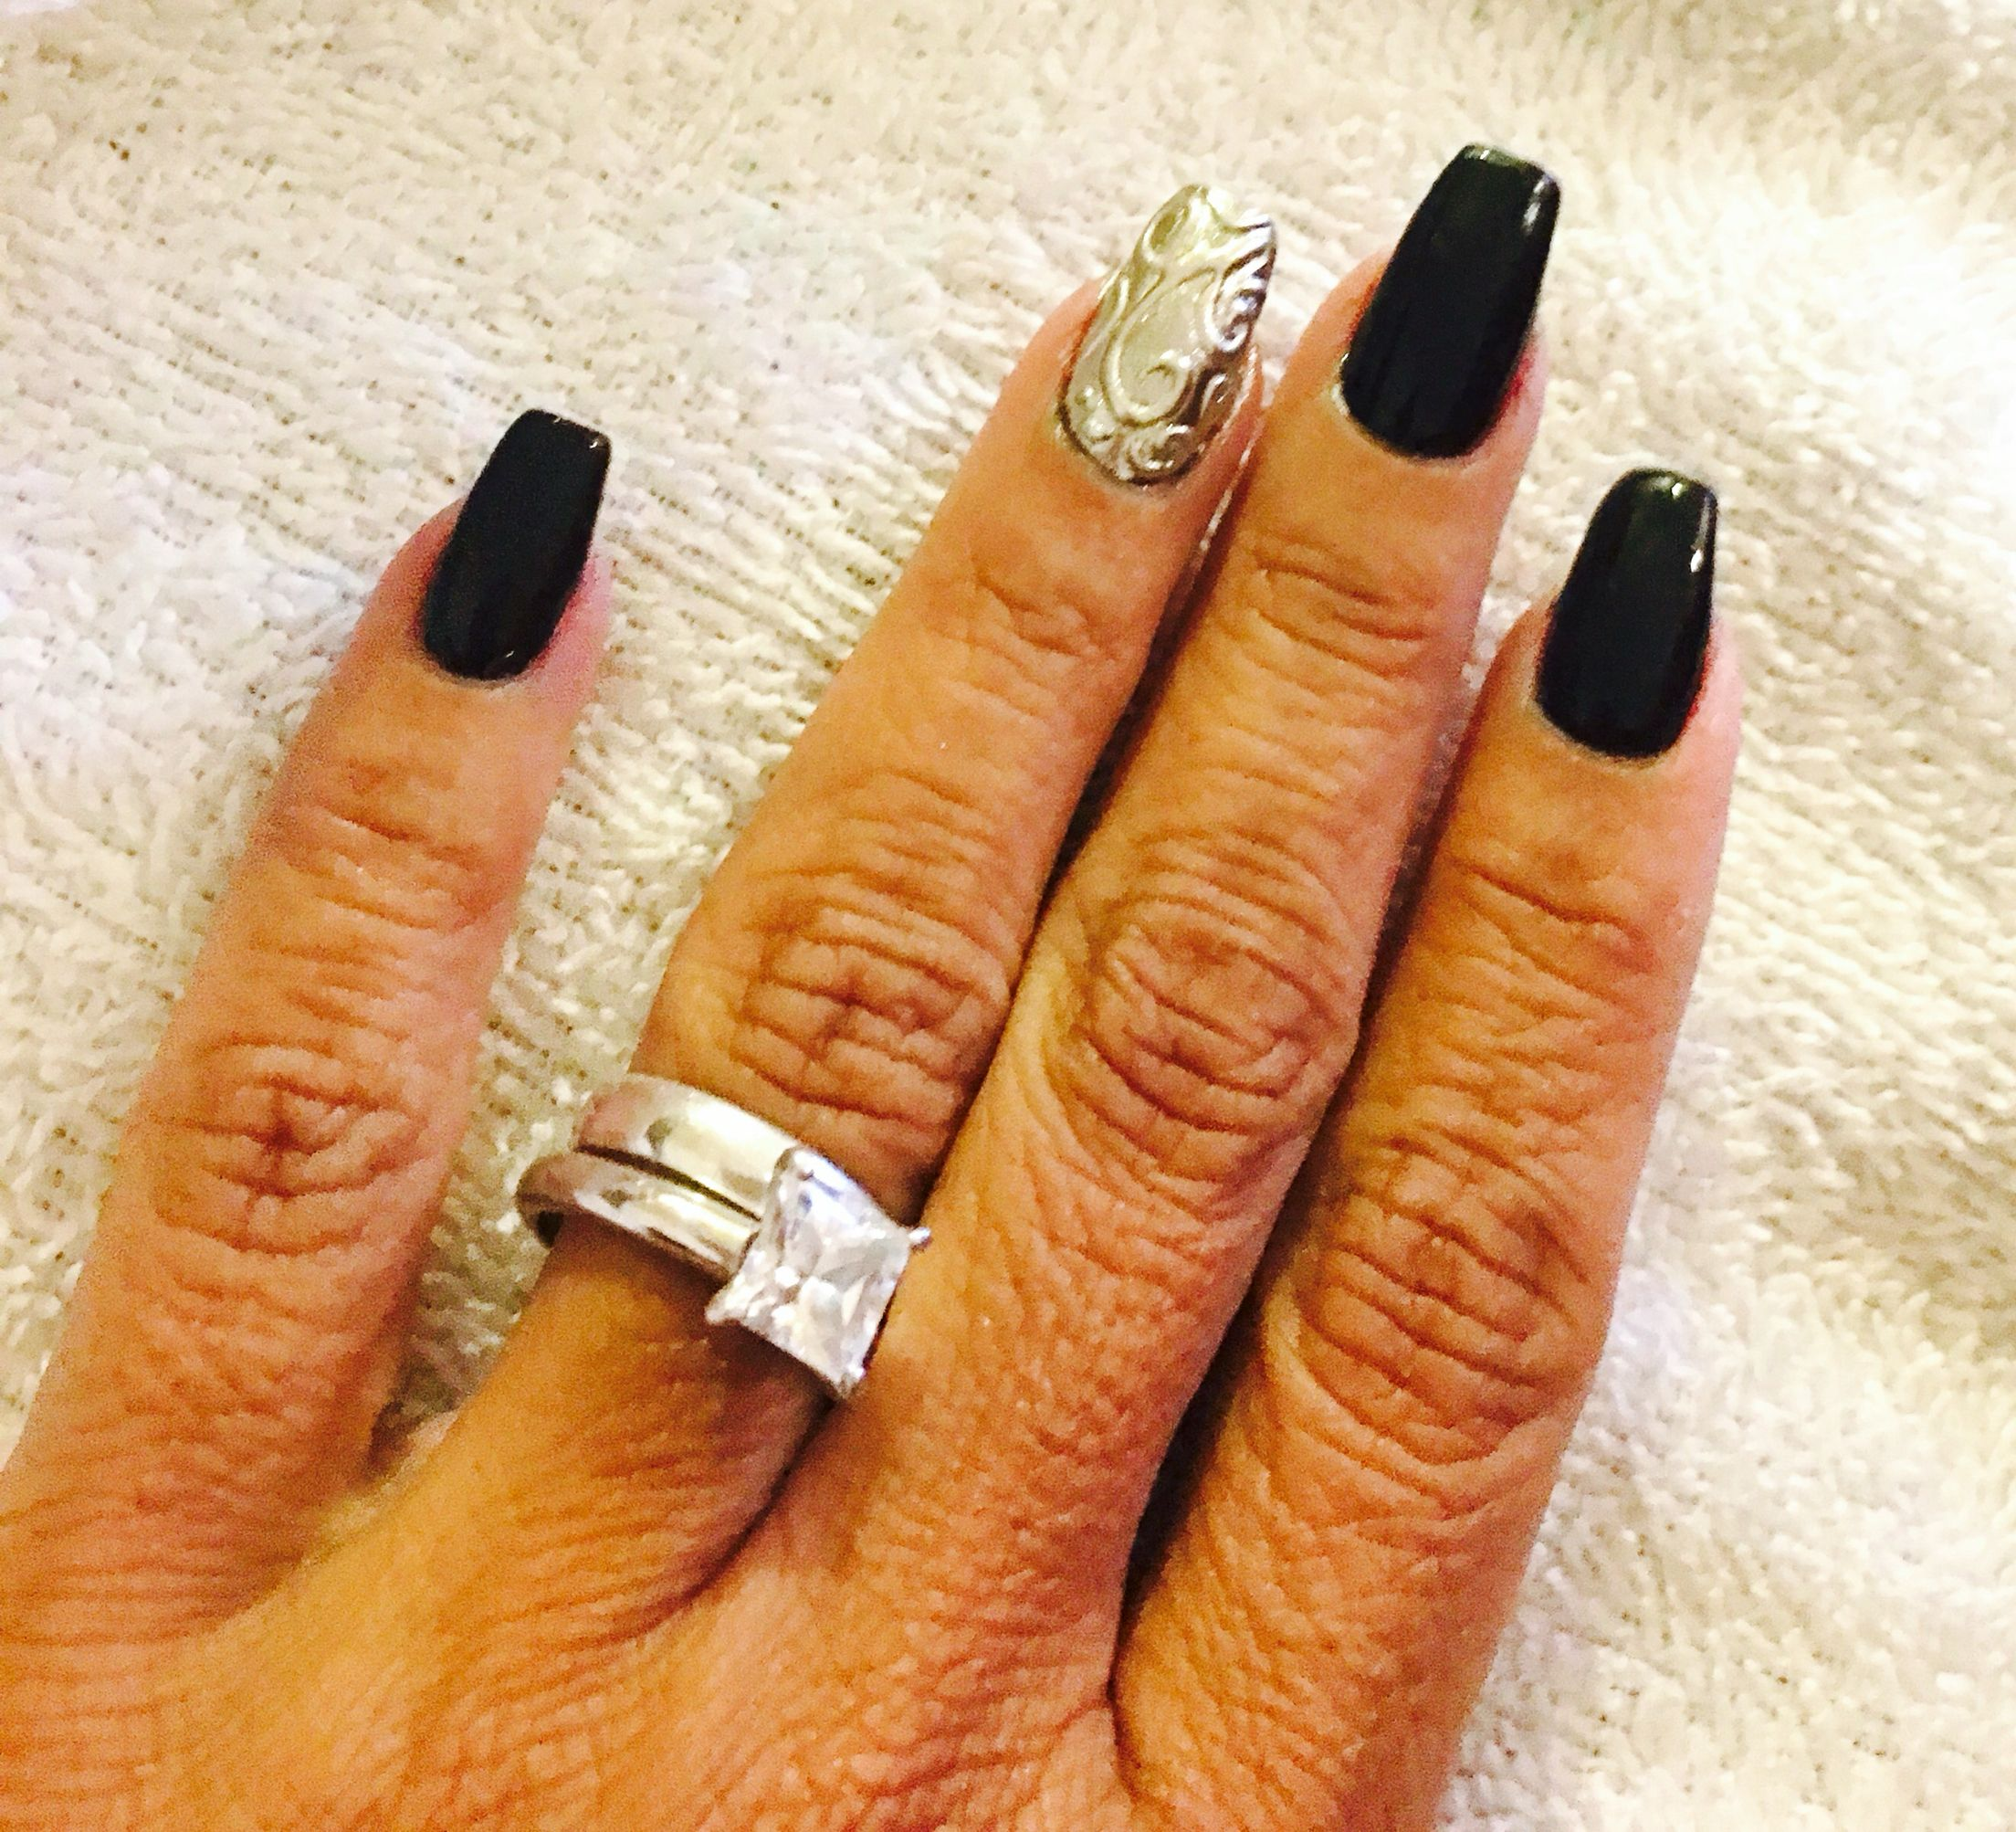 Black/Chrome silver design Nails by Anel at Exotic Nails, Chula ...